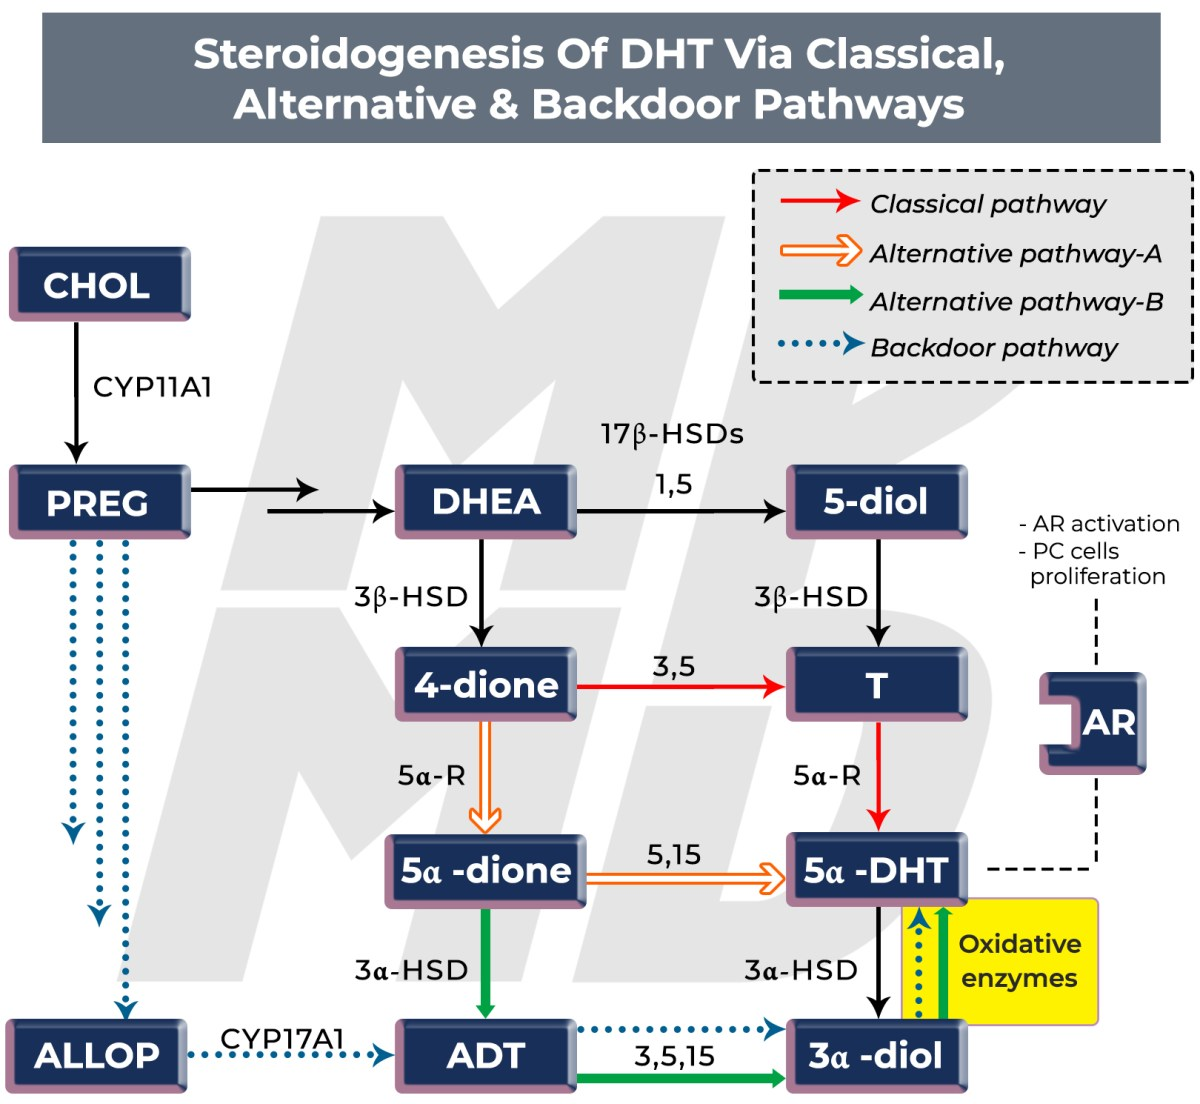 Simplified steroidogenesis of potent androgen DHT via classical, alternative and backdoor pathways